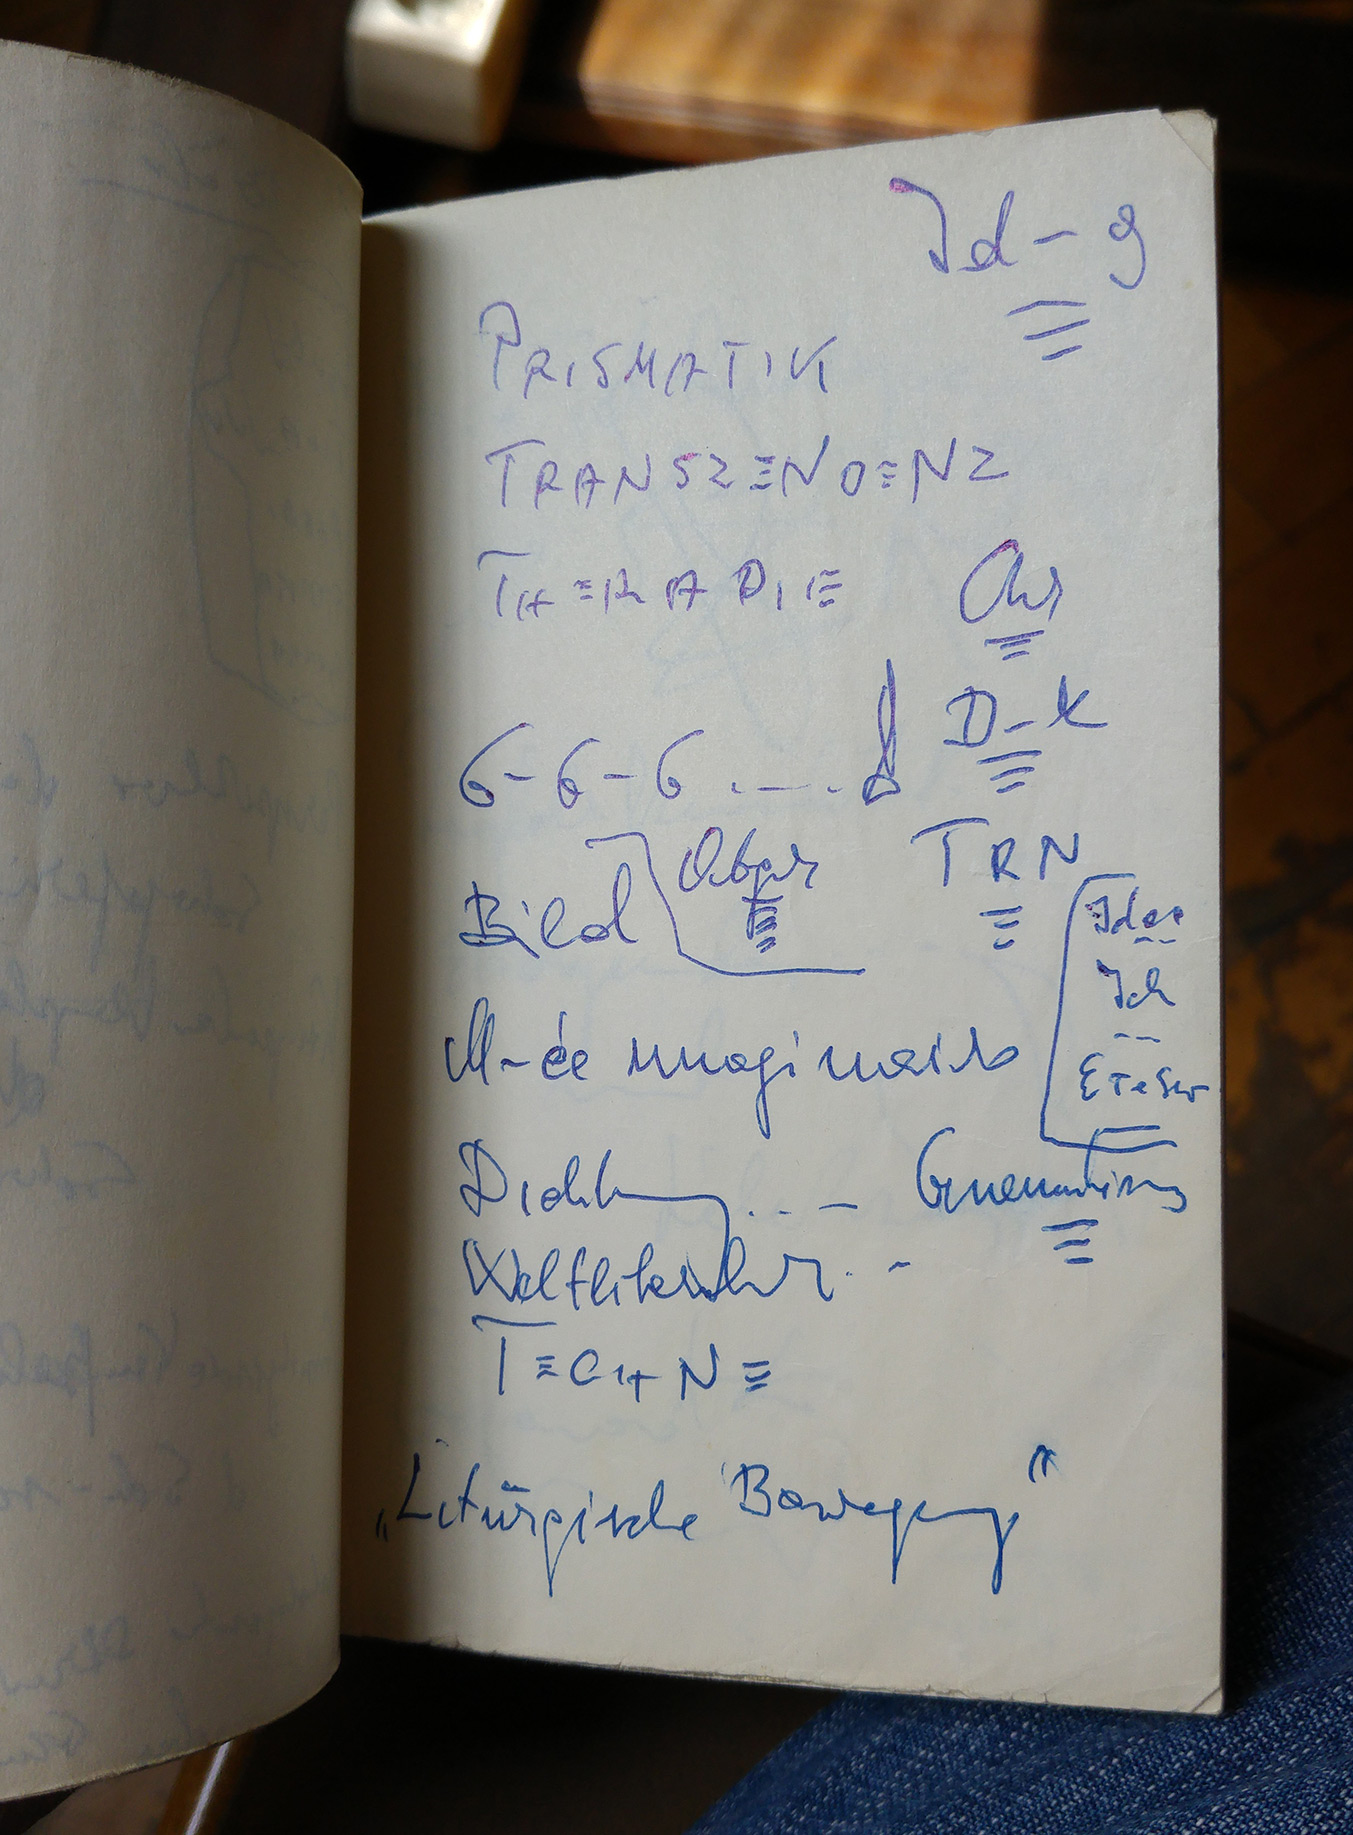 A page from the notebooks of Lajos Szabó created during his emigration years.